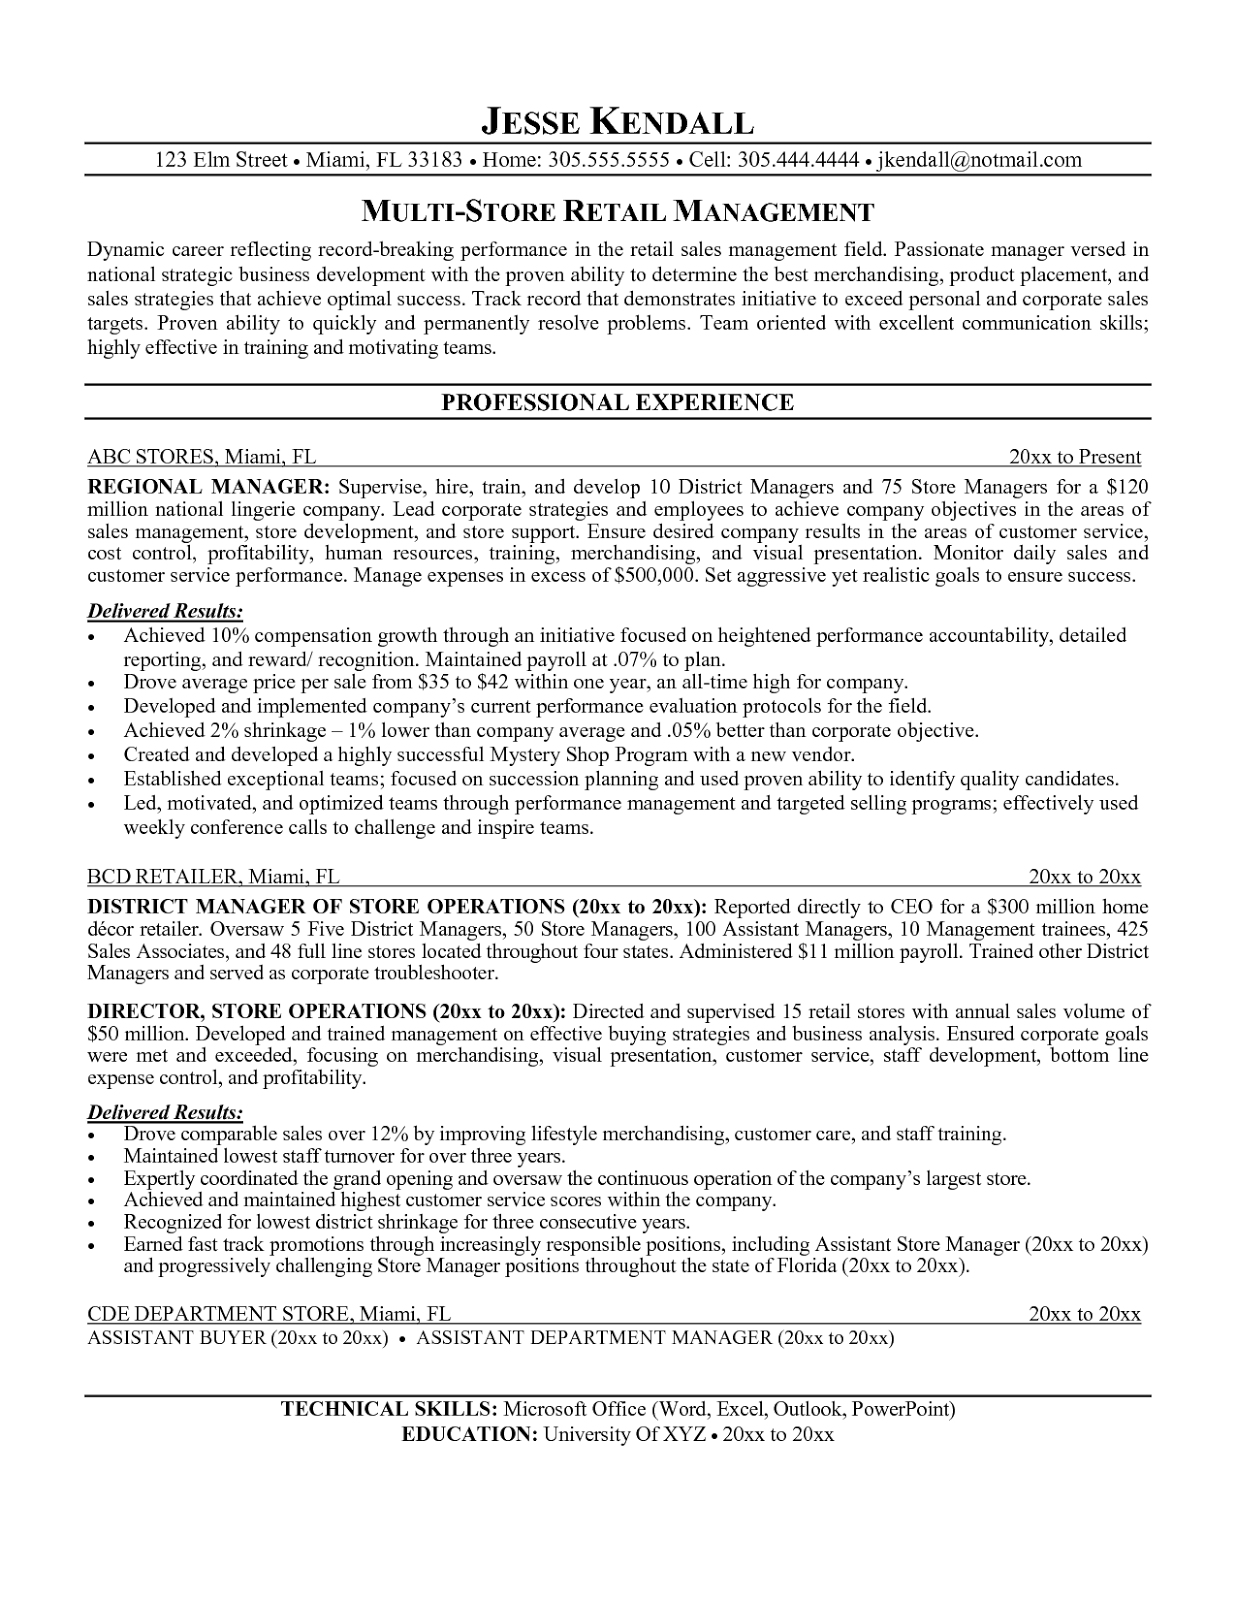 retail management resume examples and samples sample of expense retail management resume samples - Sample Warehouse Manager Resume